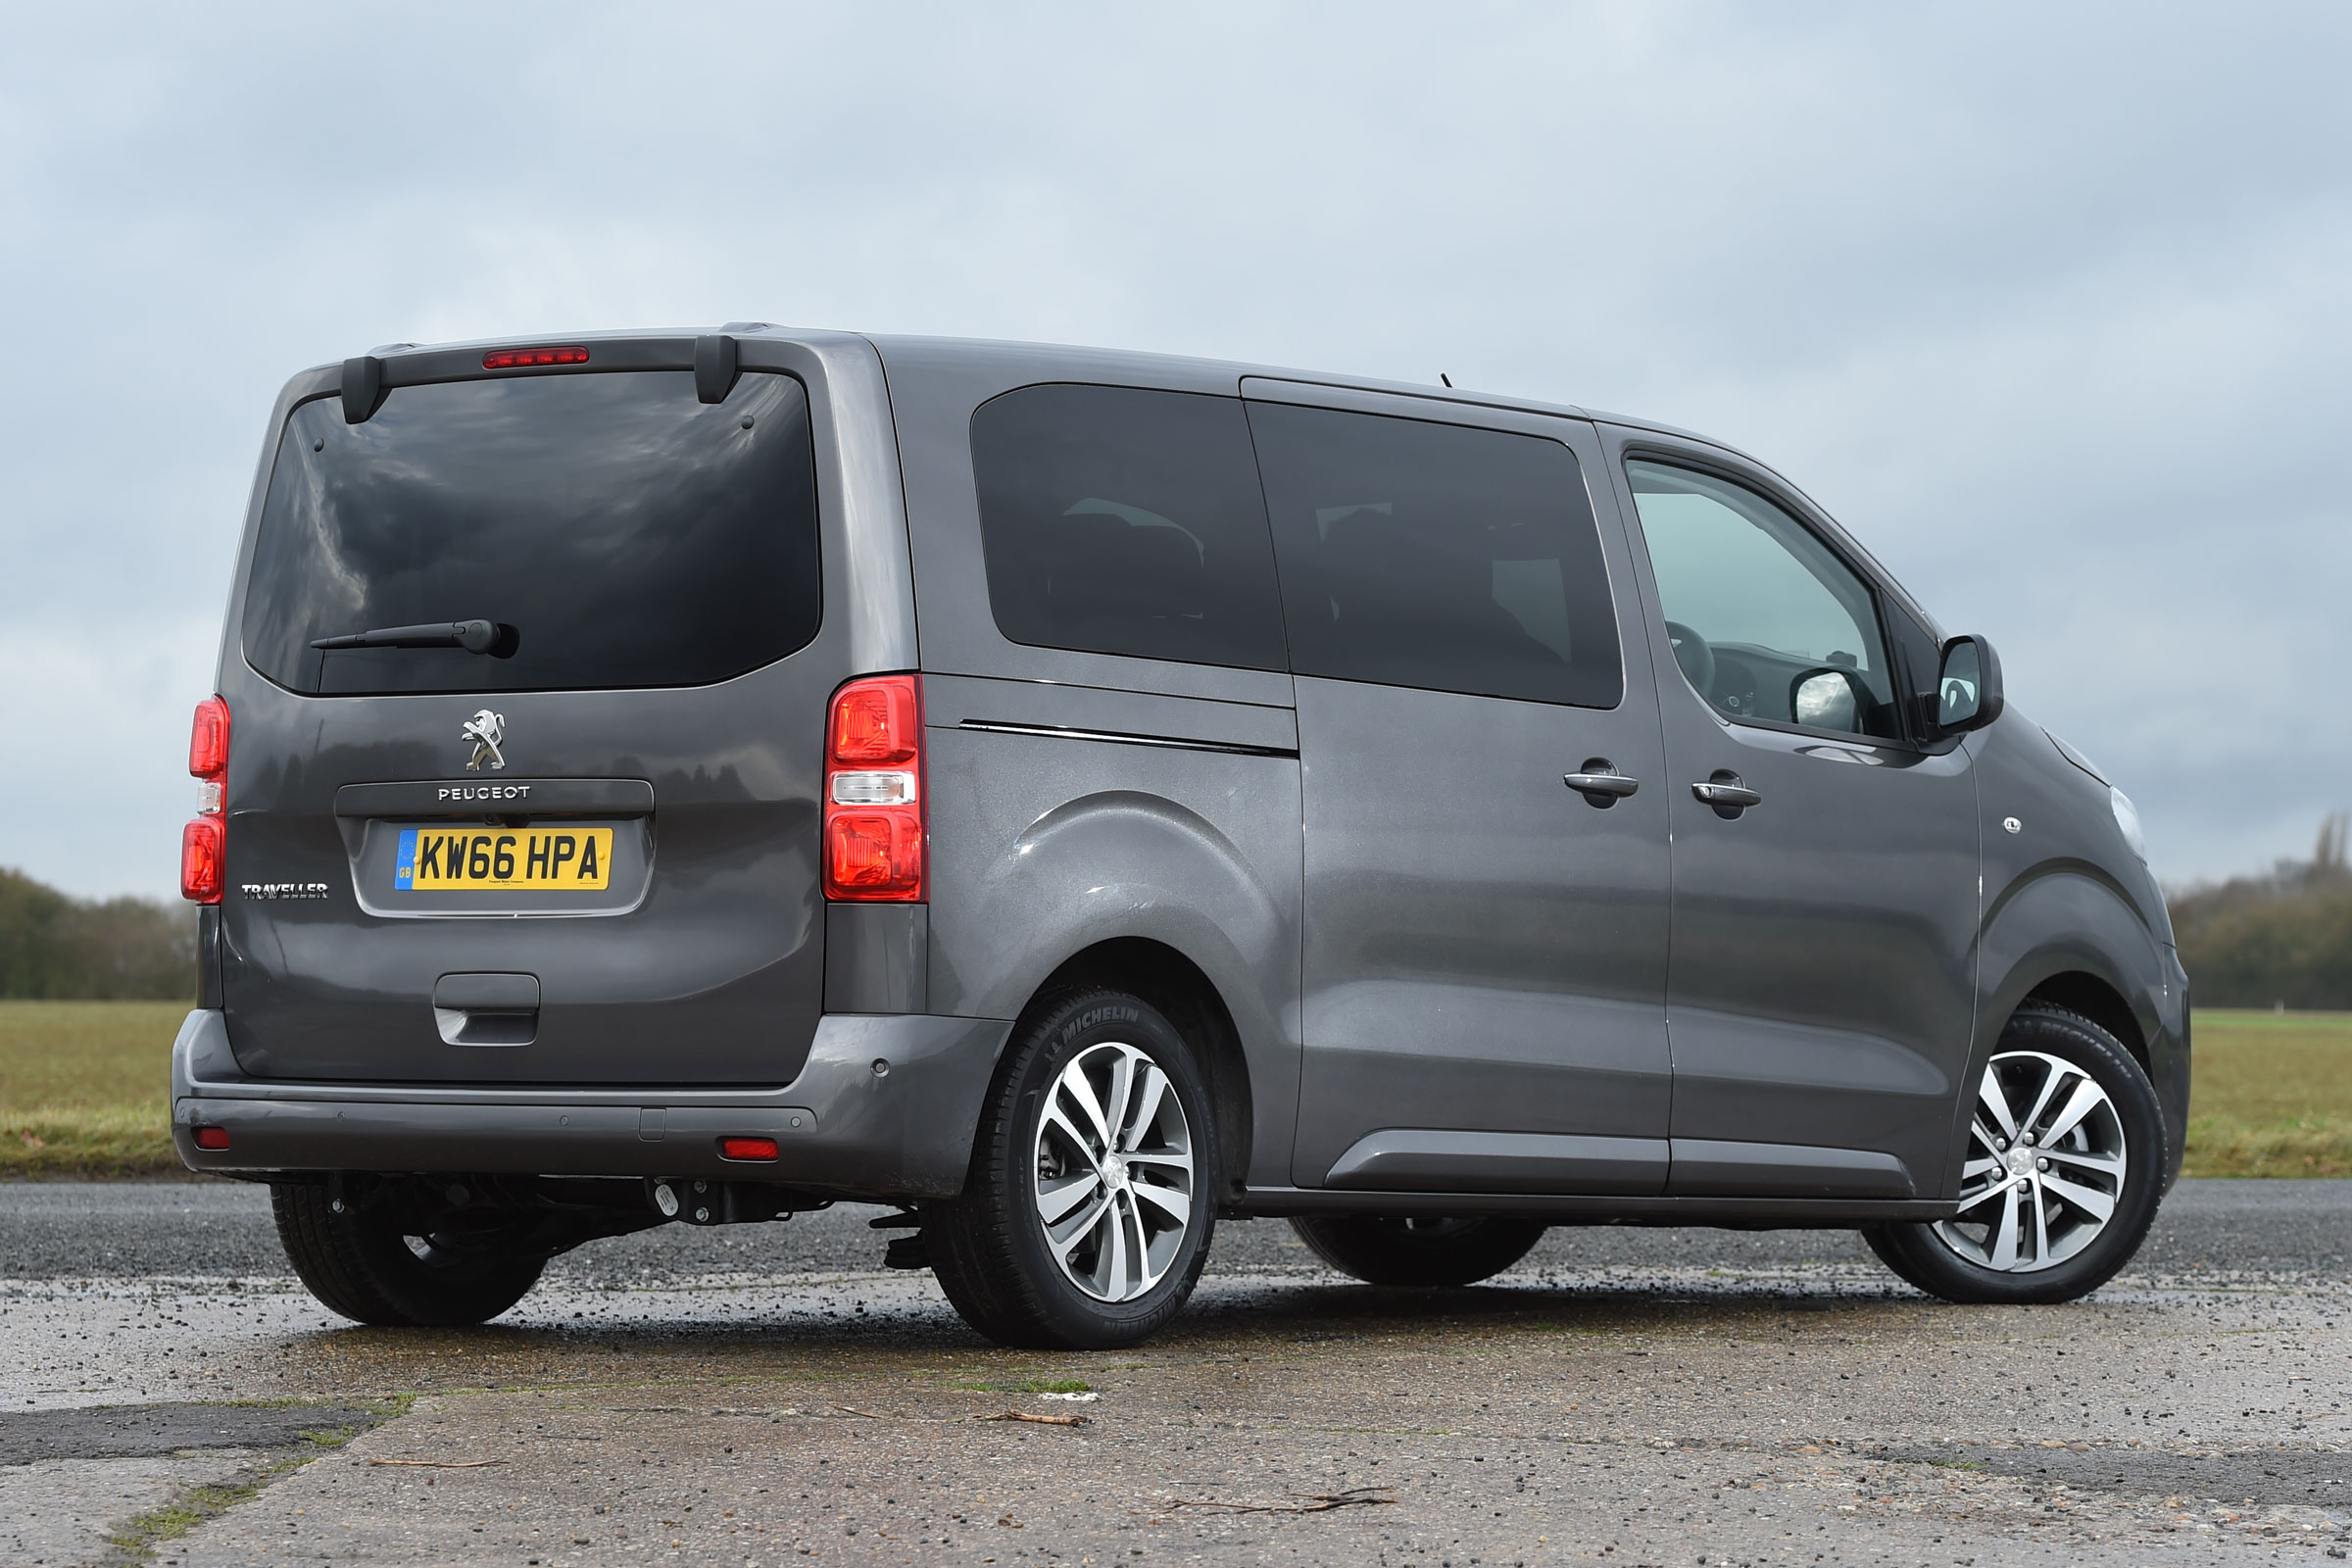 2017 Peugeot Traveller Allure Exterior Rear And Side (Photo 3 of 13)